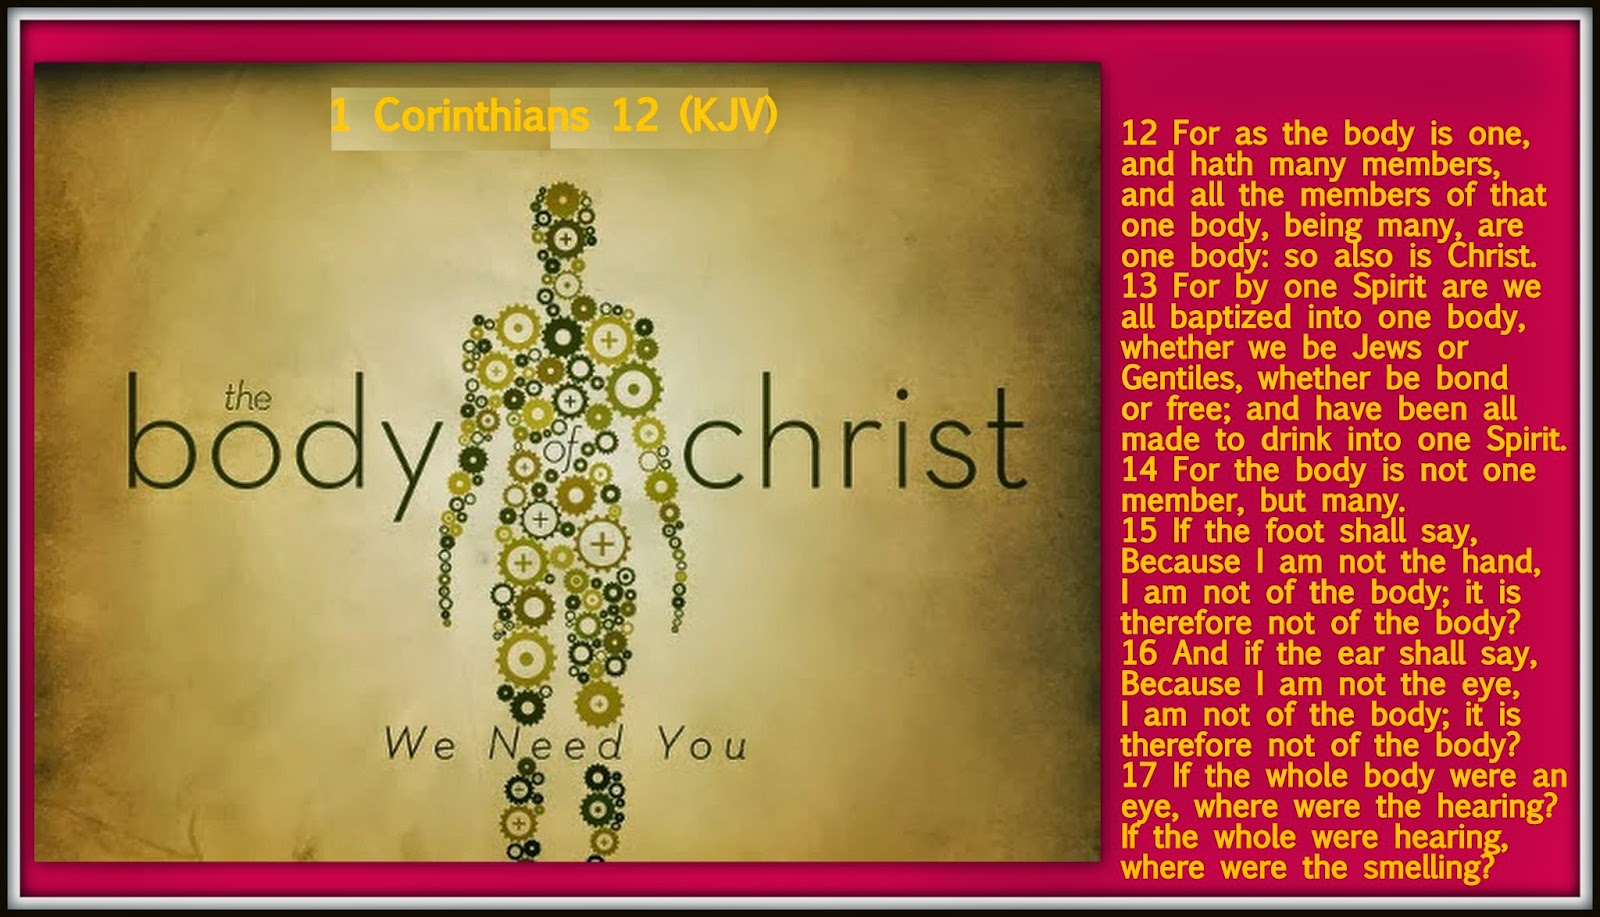 This Christmas Love 1 Corinthians 12 31: Red Pill Diaries: 1 Corinthians 12 (KJV